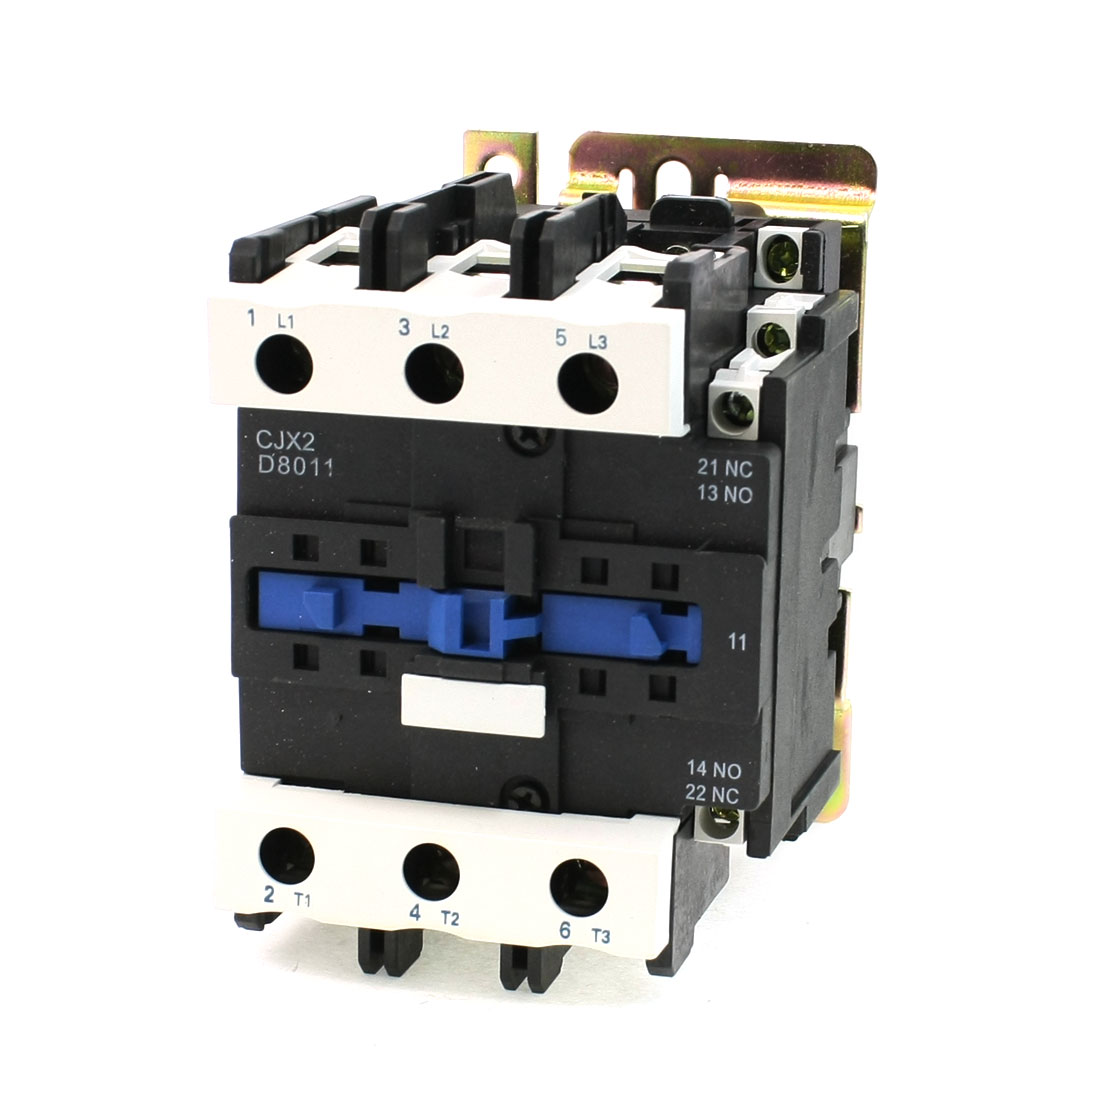 380V Rated Coil Voltage 3 Phase 1NO+1NC CJX2-8011 Alternating Current Contactor